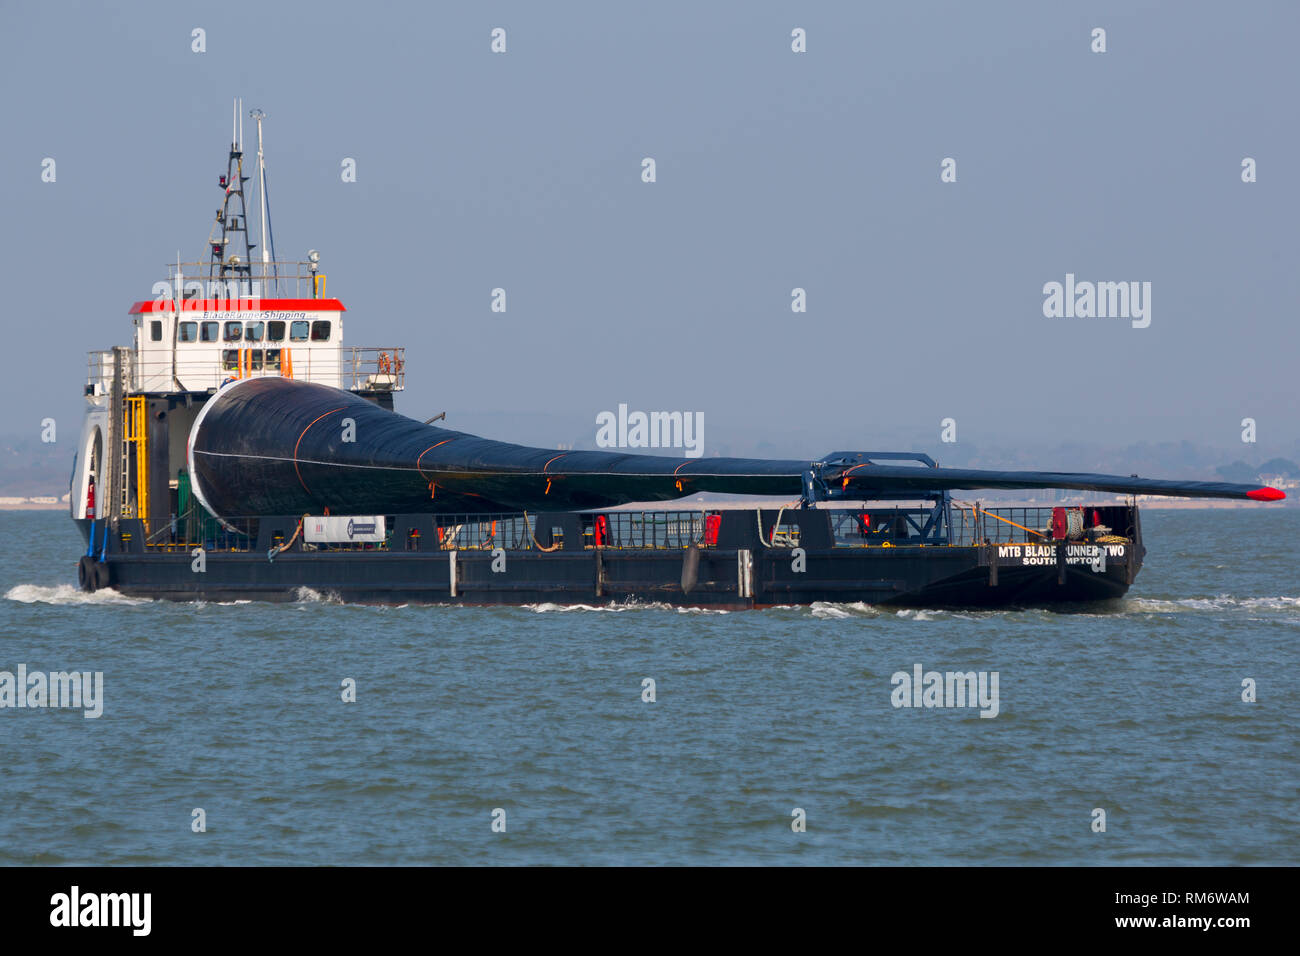 Wind turbine blade, ship, Blade Runner, crossing, The Solent, Cowes, Isle of Wight, England, UK, - Stock Image